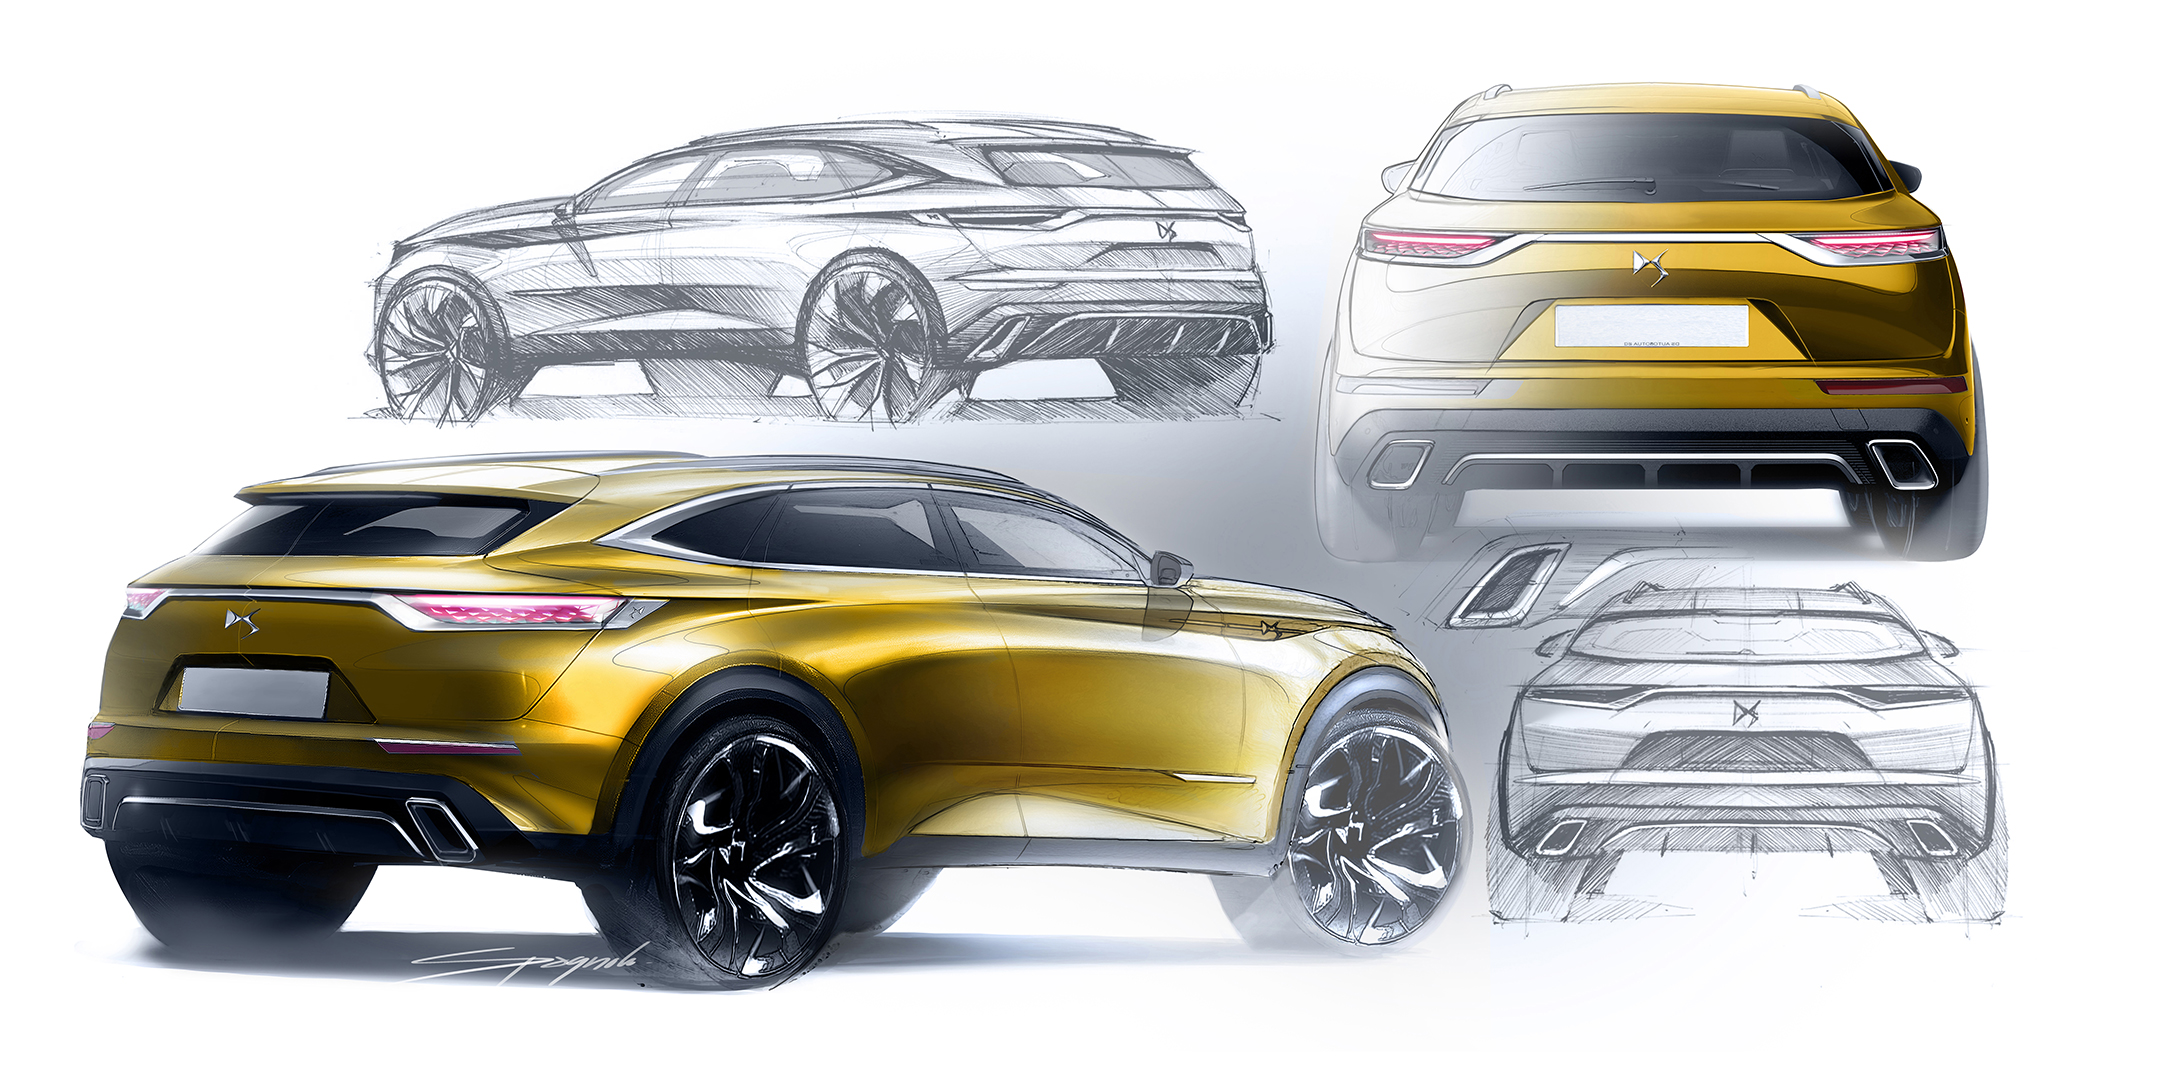 DS 7 CROSSBACK - 2017 - rear sketch design